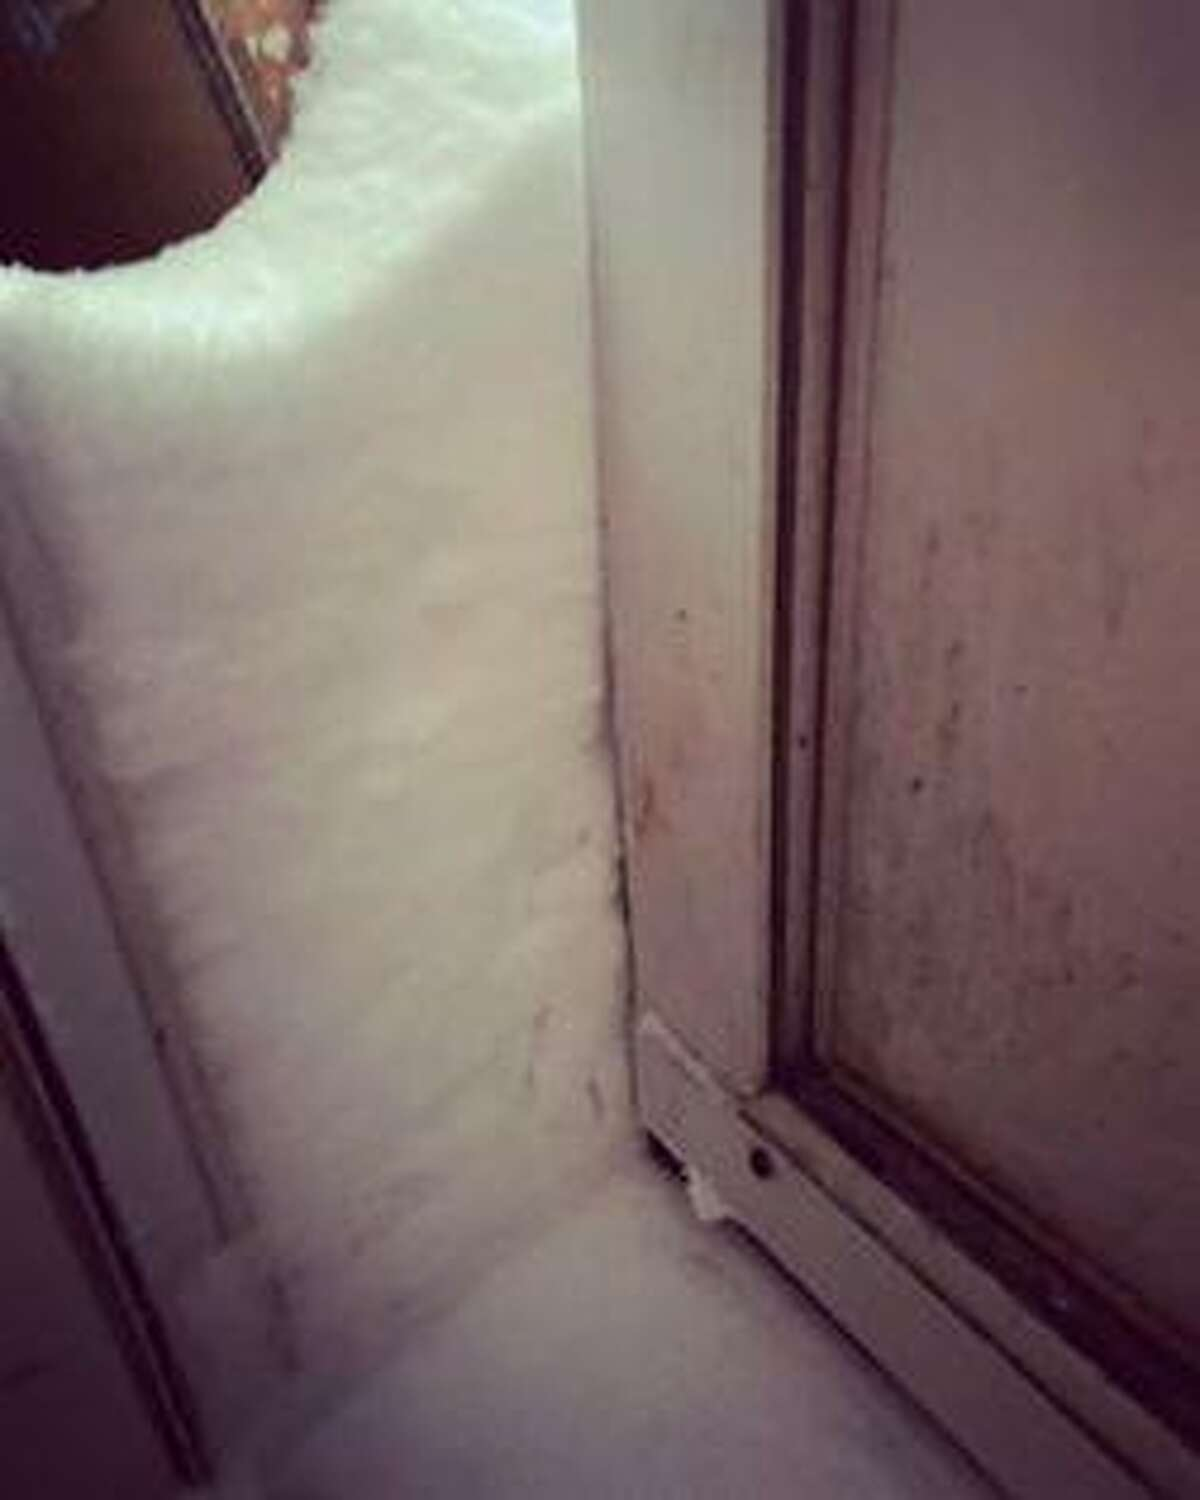 Bantam resident Jaymee Farkas couldn't get out her door this morning, due to snow pile-up.